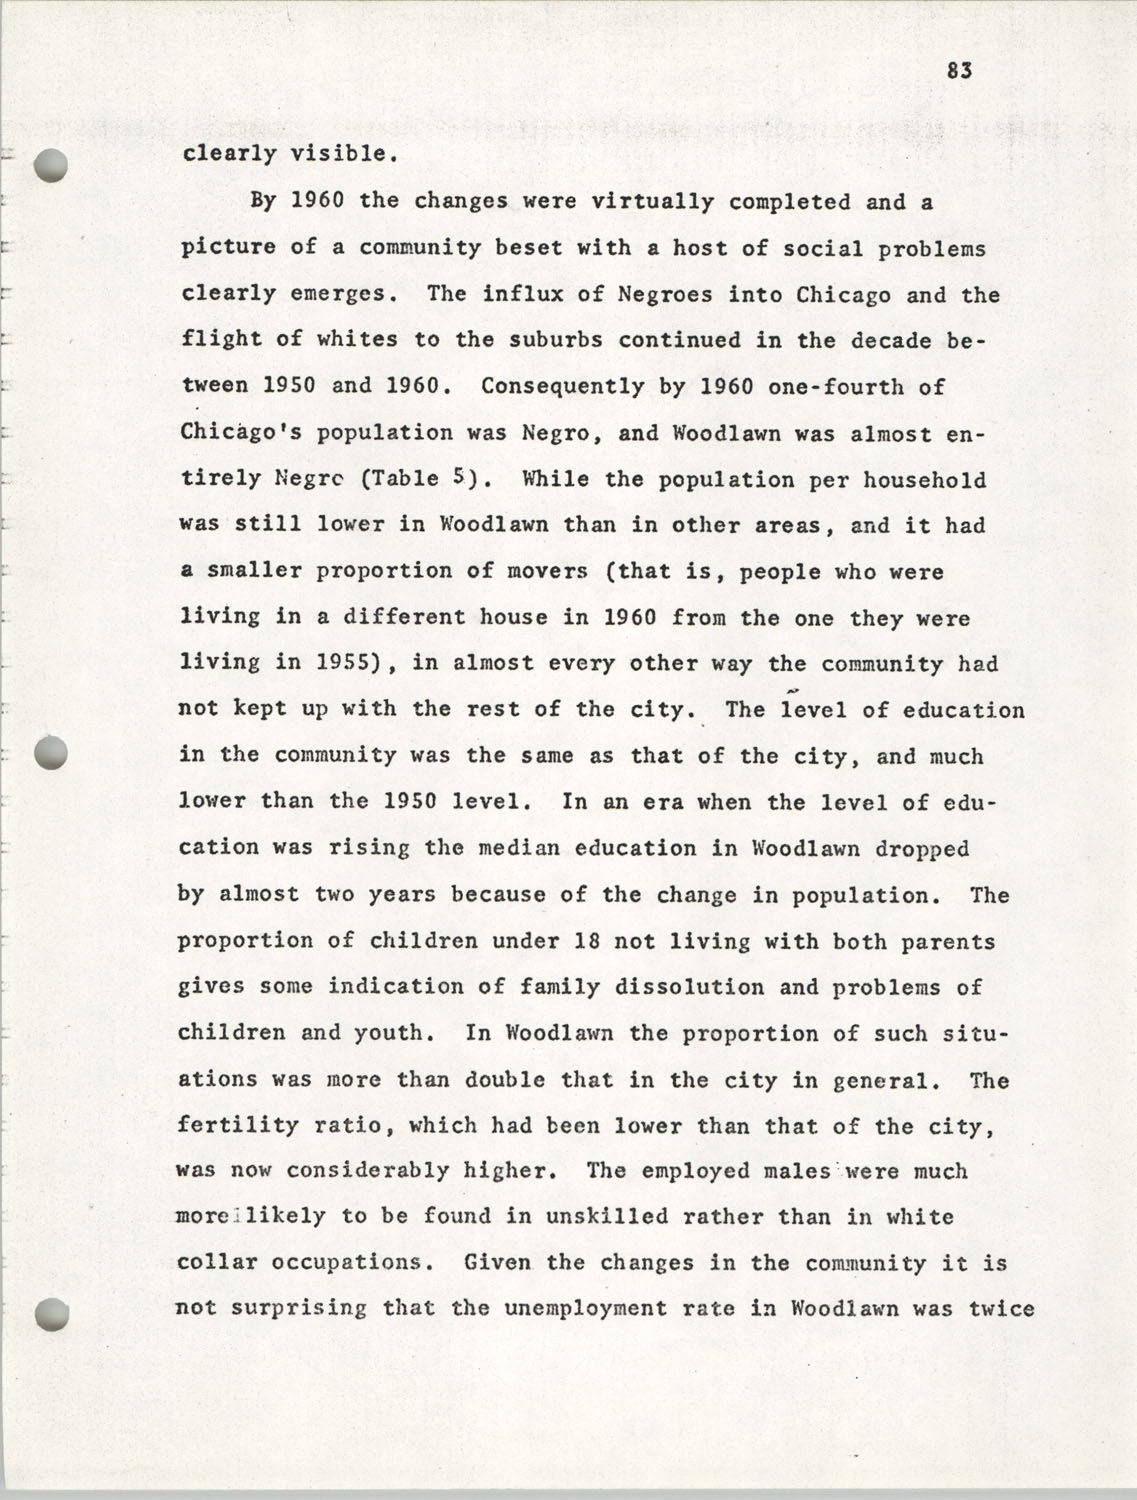 Citizen Participation. Democracy and Social Change, December 1, 1969, Page 83